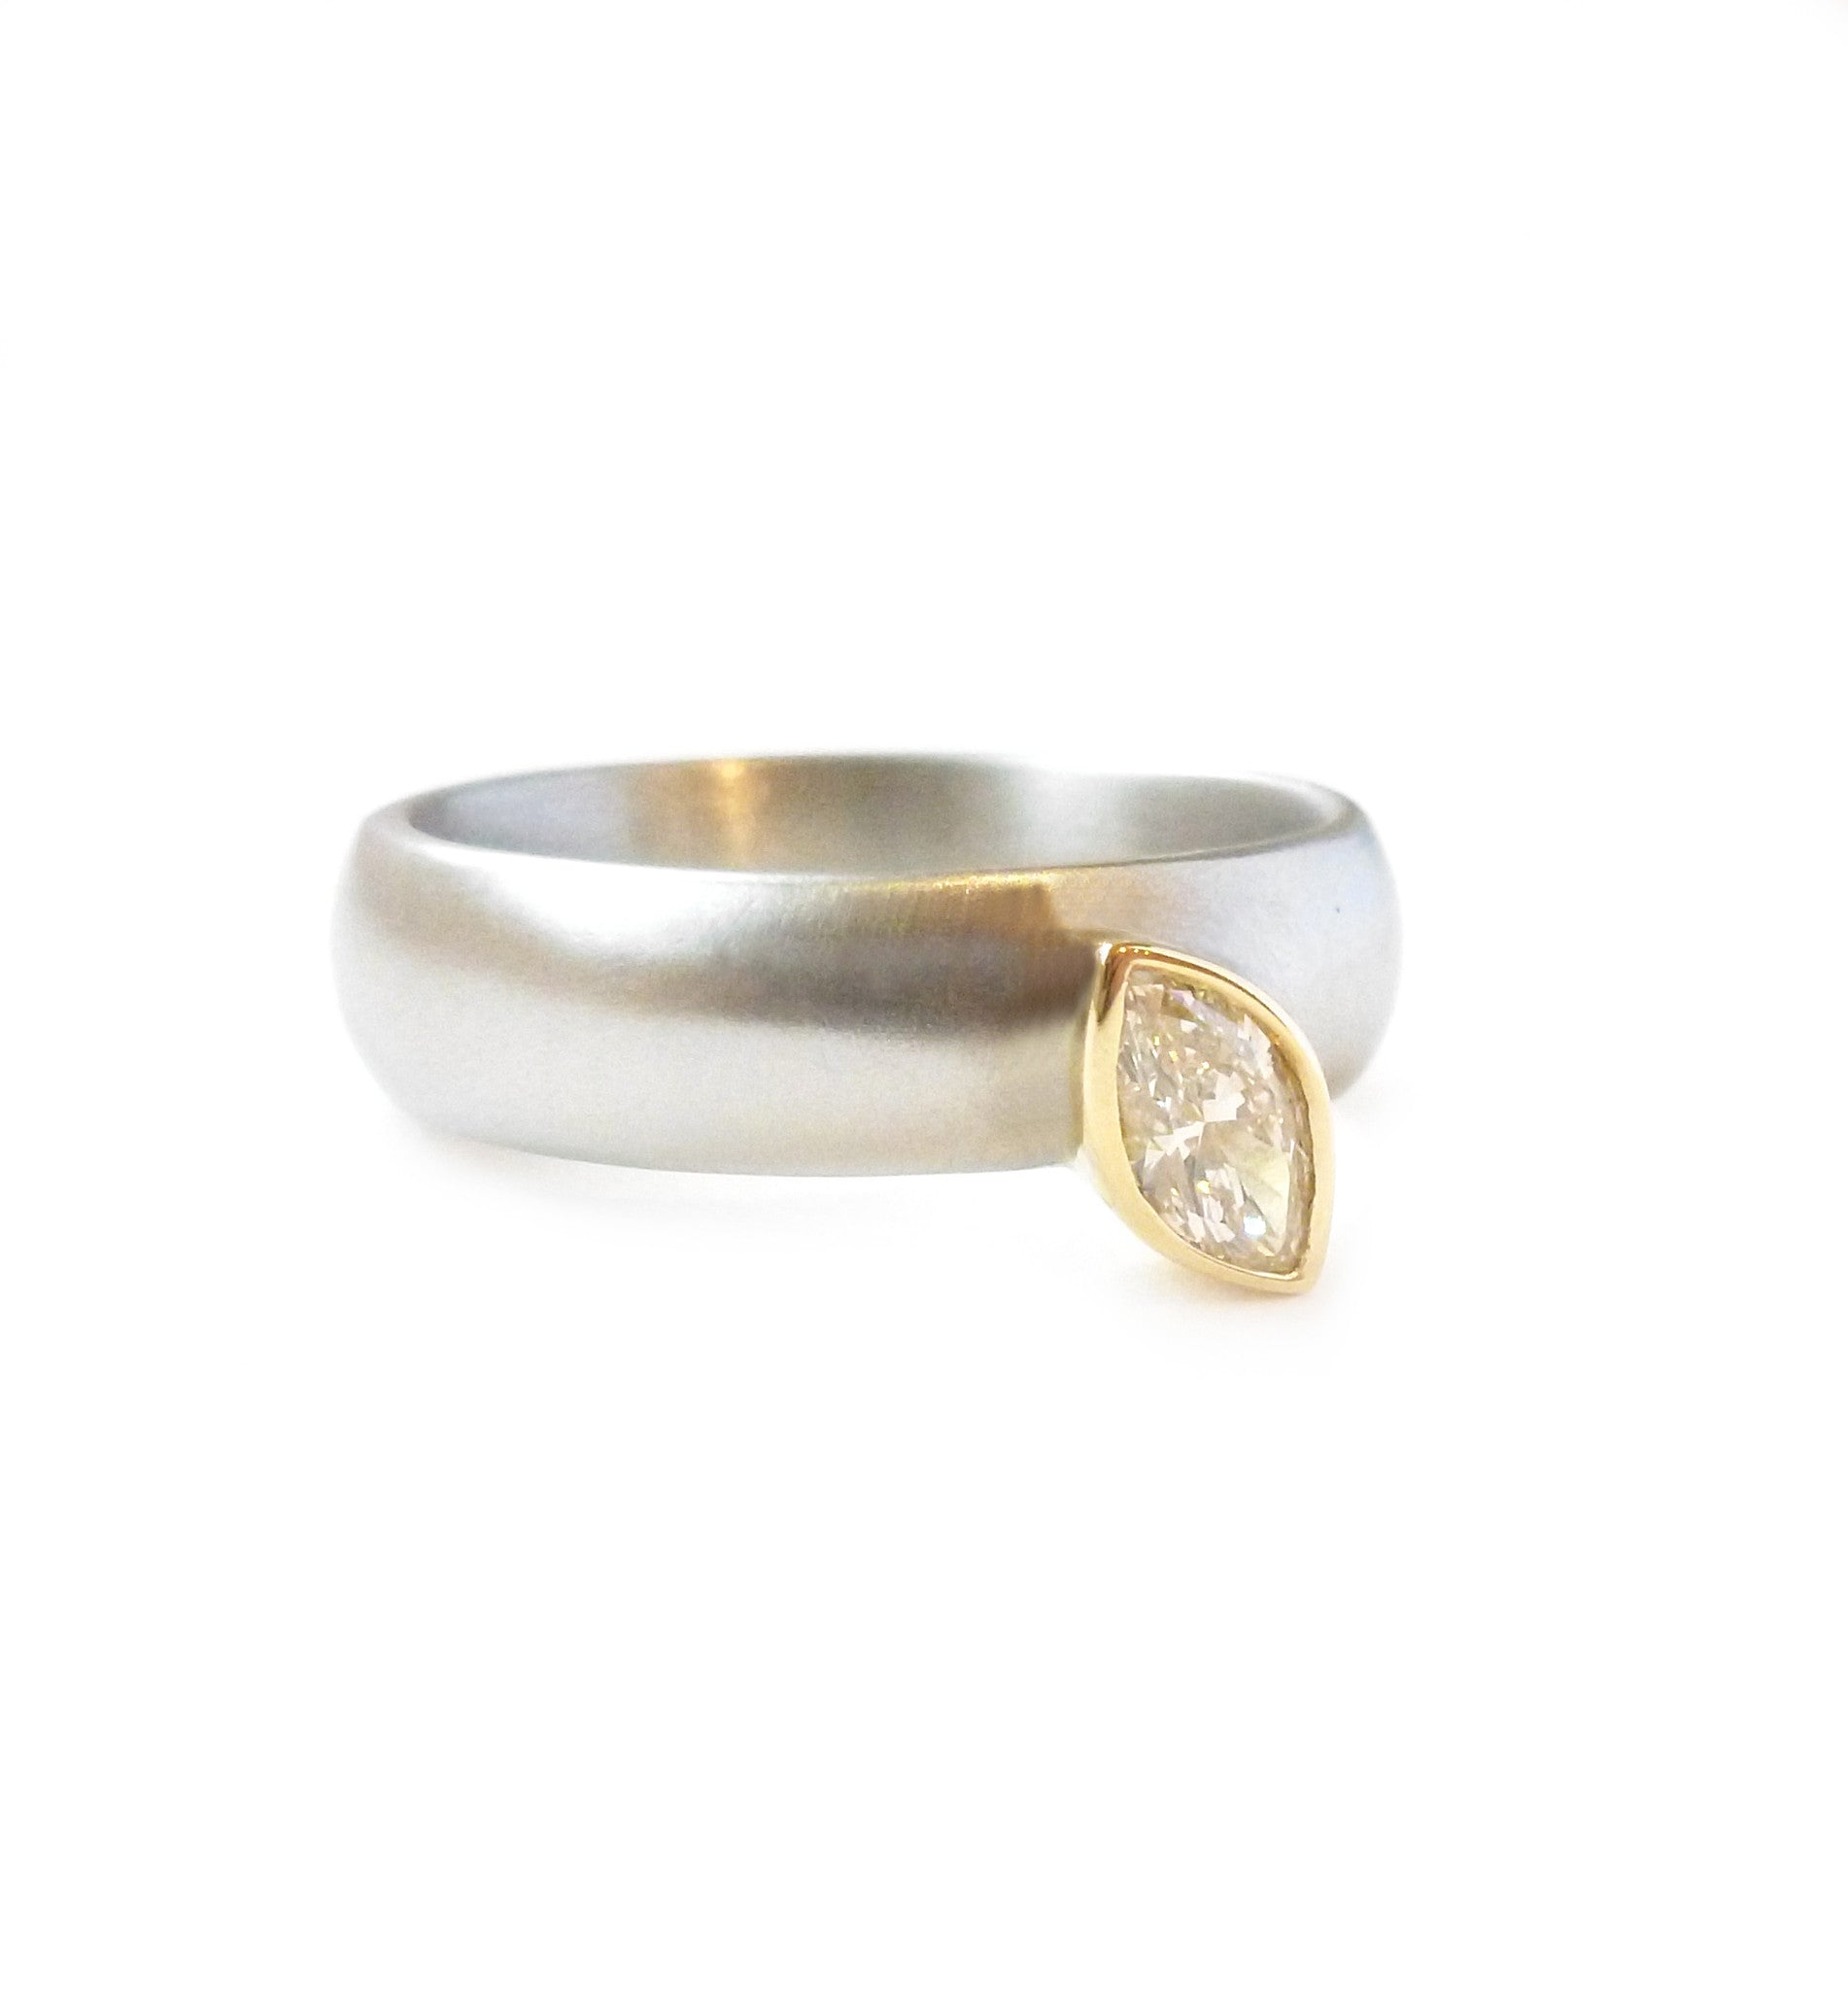 Palladium and 18k Gold Marquise Diamond Ring pdr9